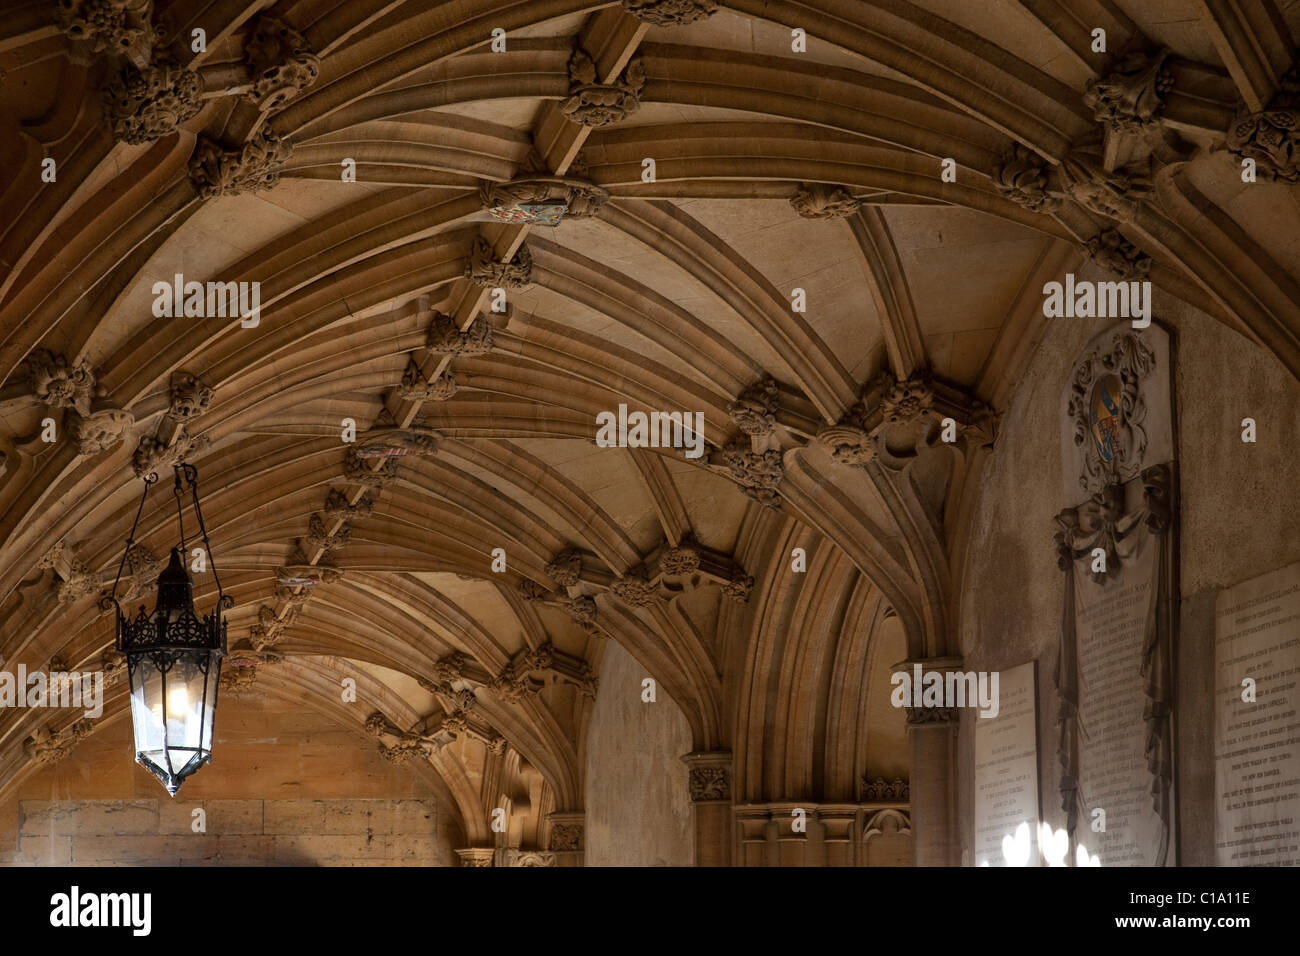 rib-vault ceiling of entrance to the great hall of christ church